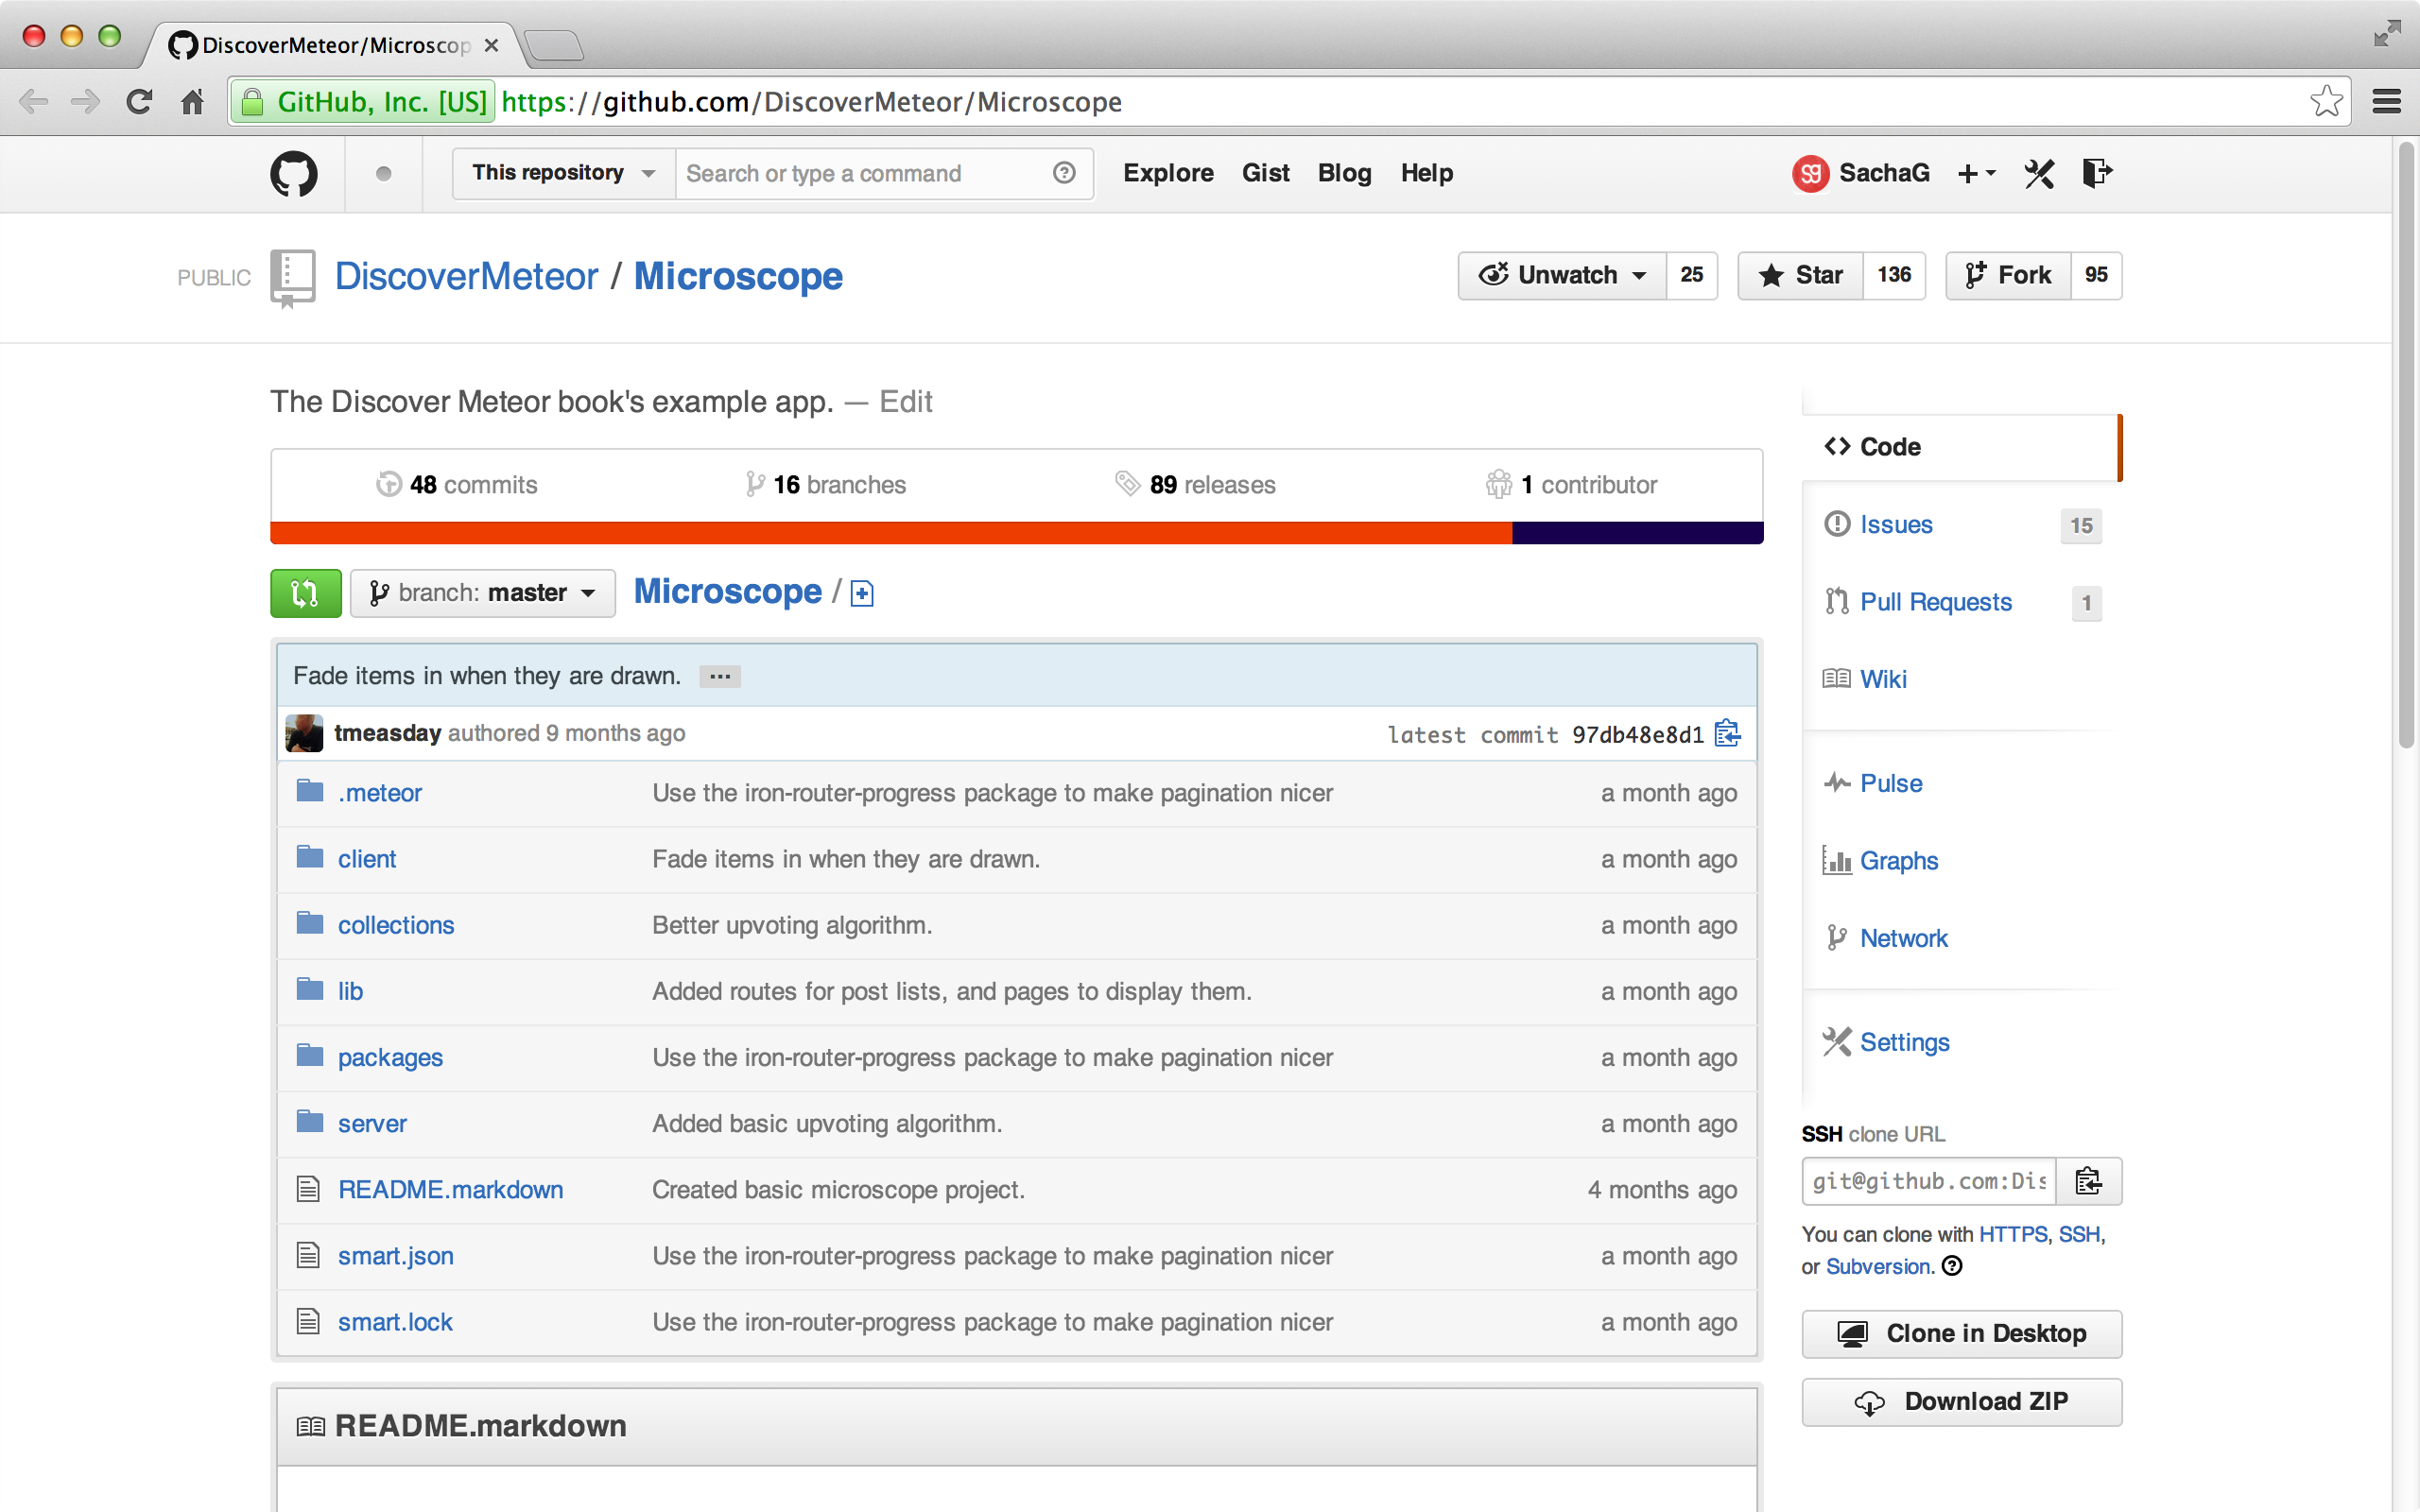 The repository at commit 14-2.